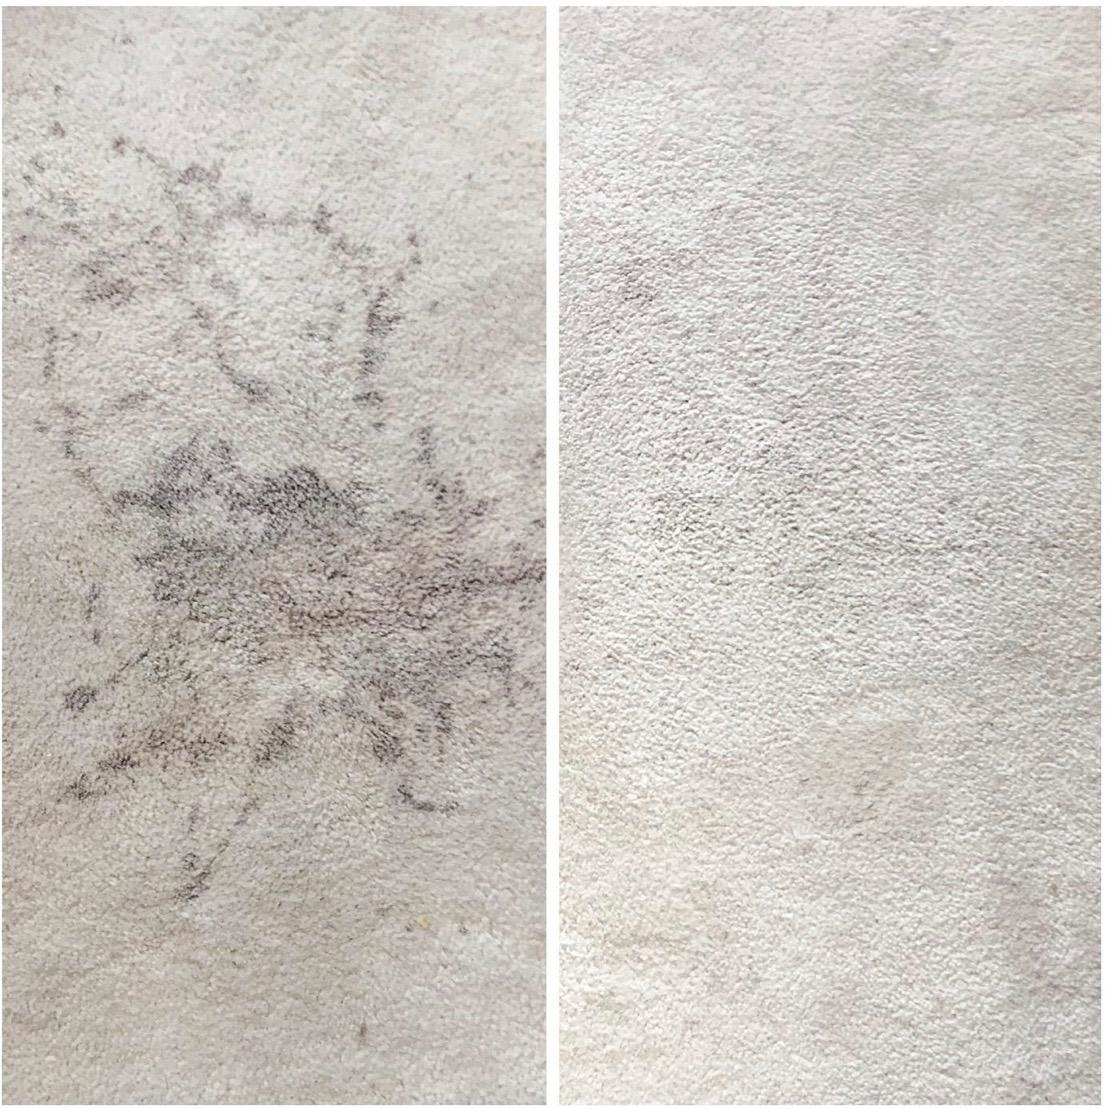 A reviewer's carpet before/after stain removal